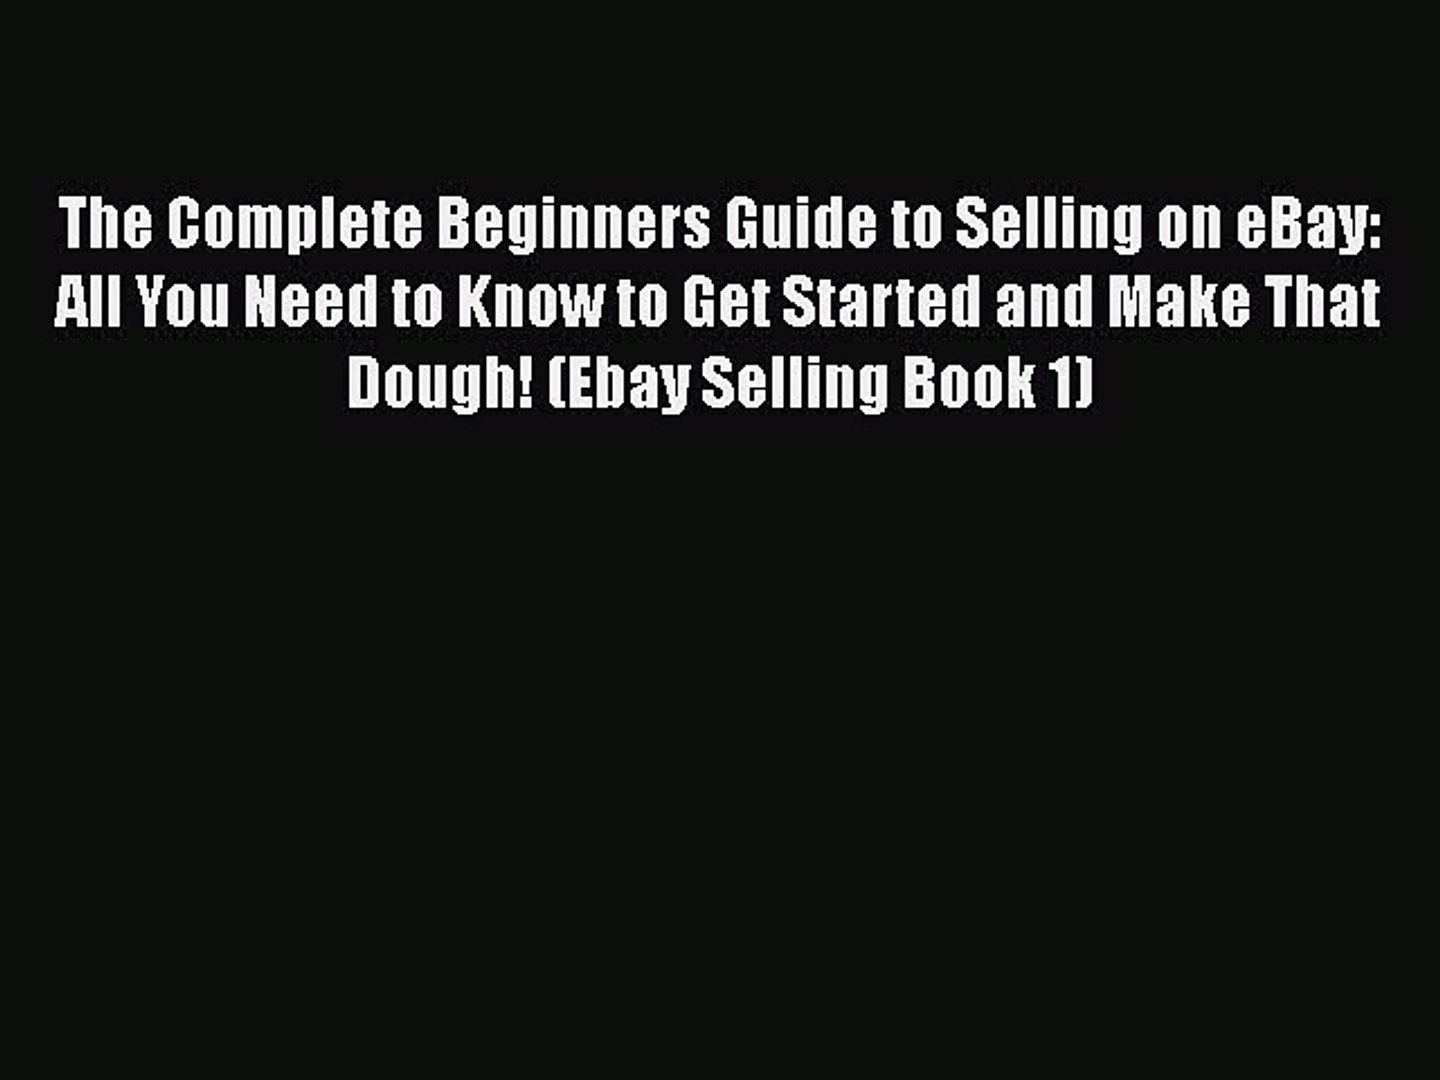 Pdf The Complete Beginners Guide To Selling On Ebay All You Need To Know To Get Started Video Dailymotion